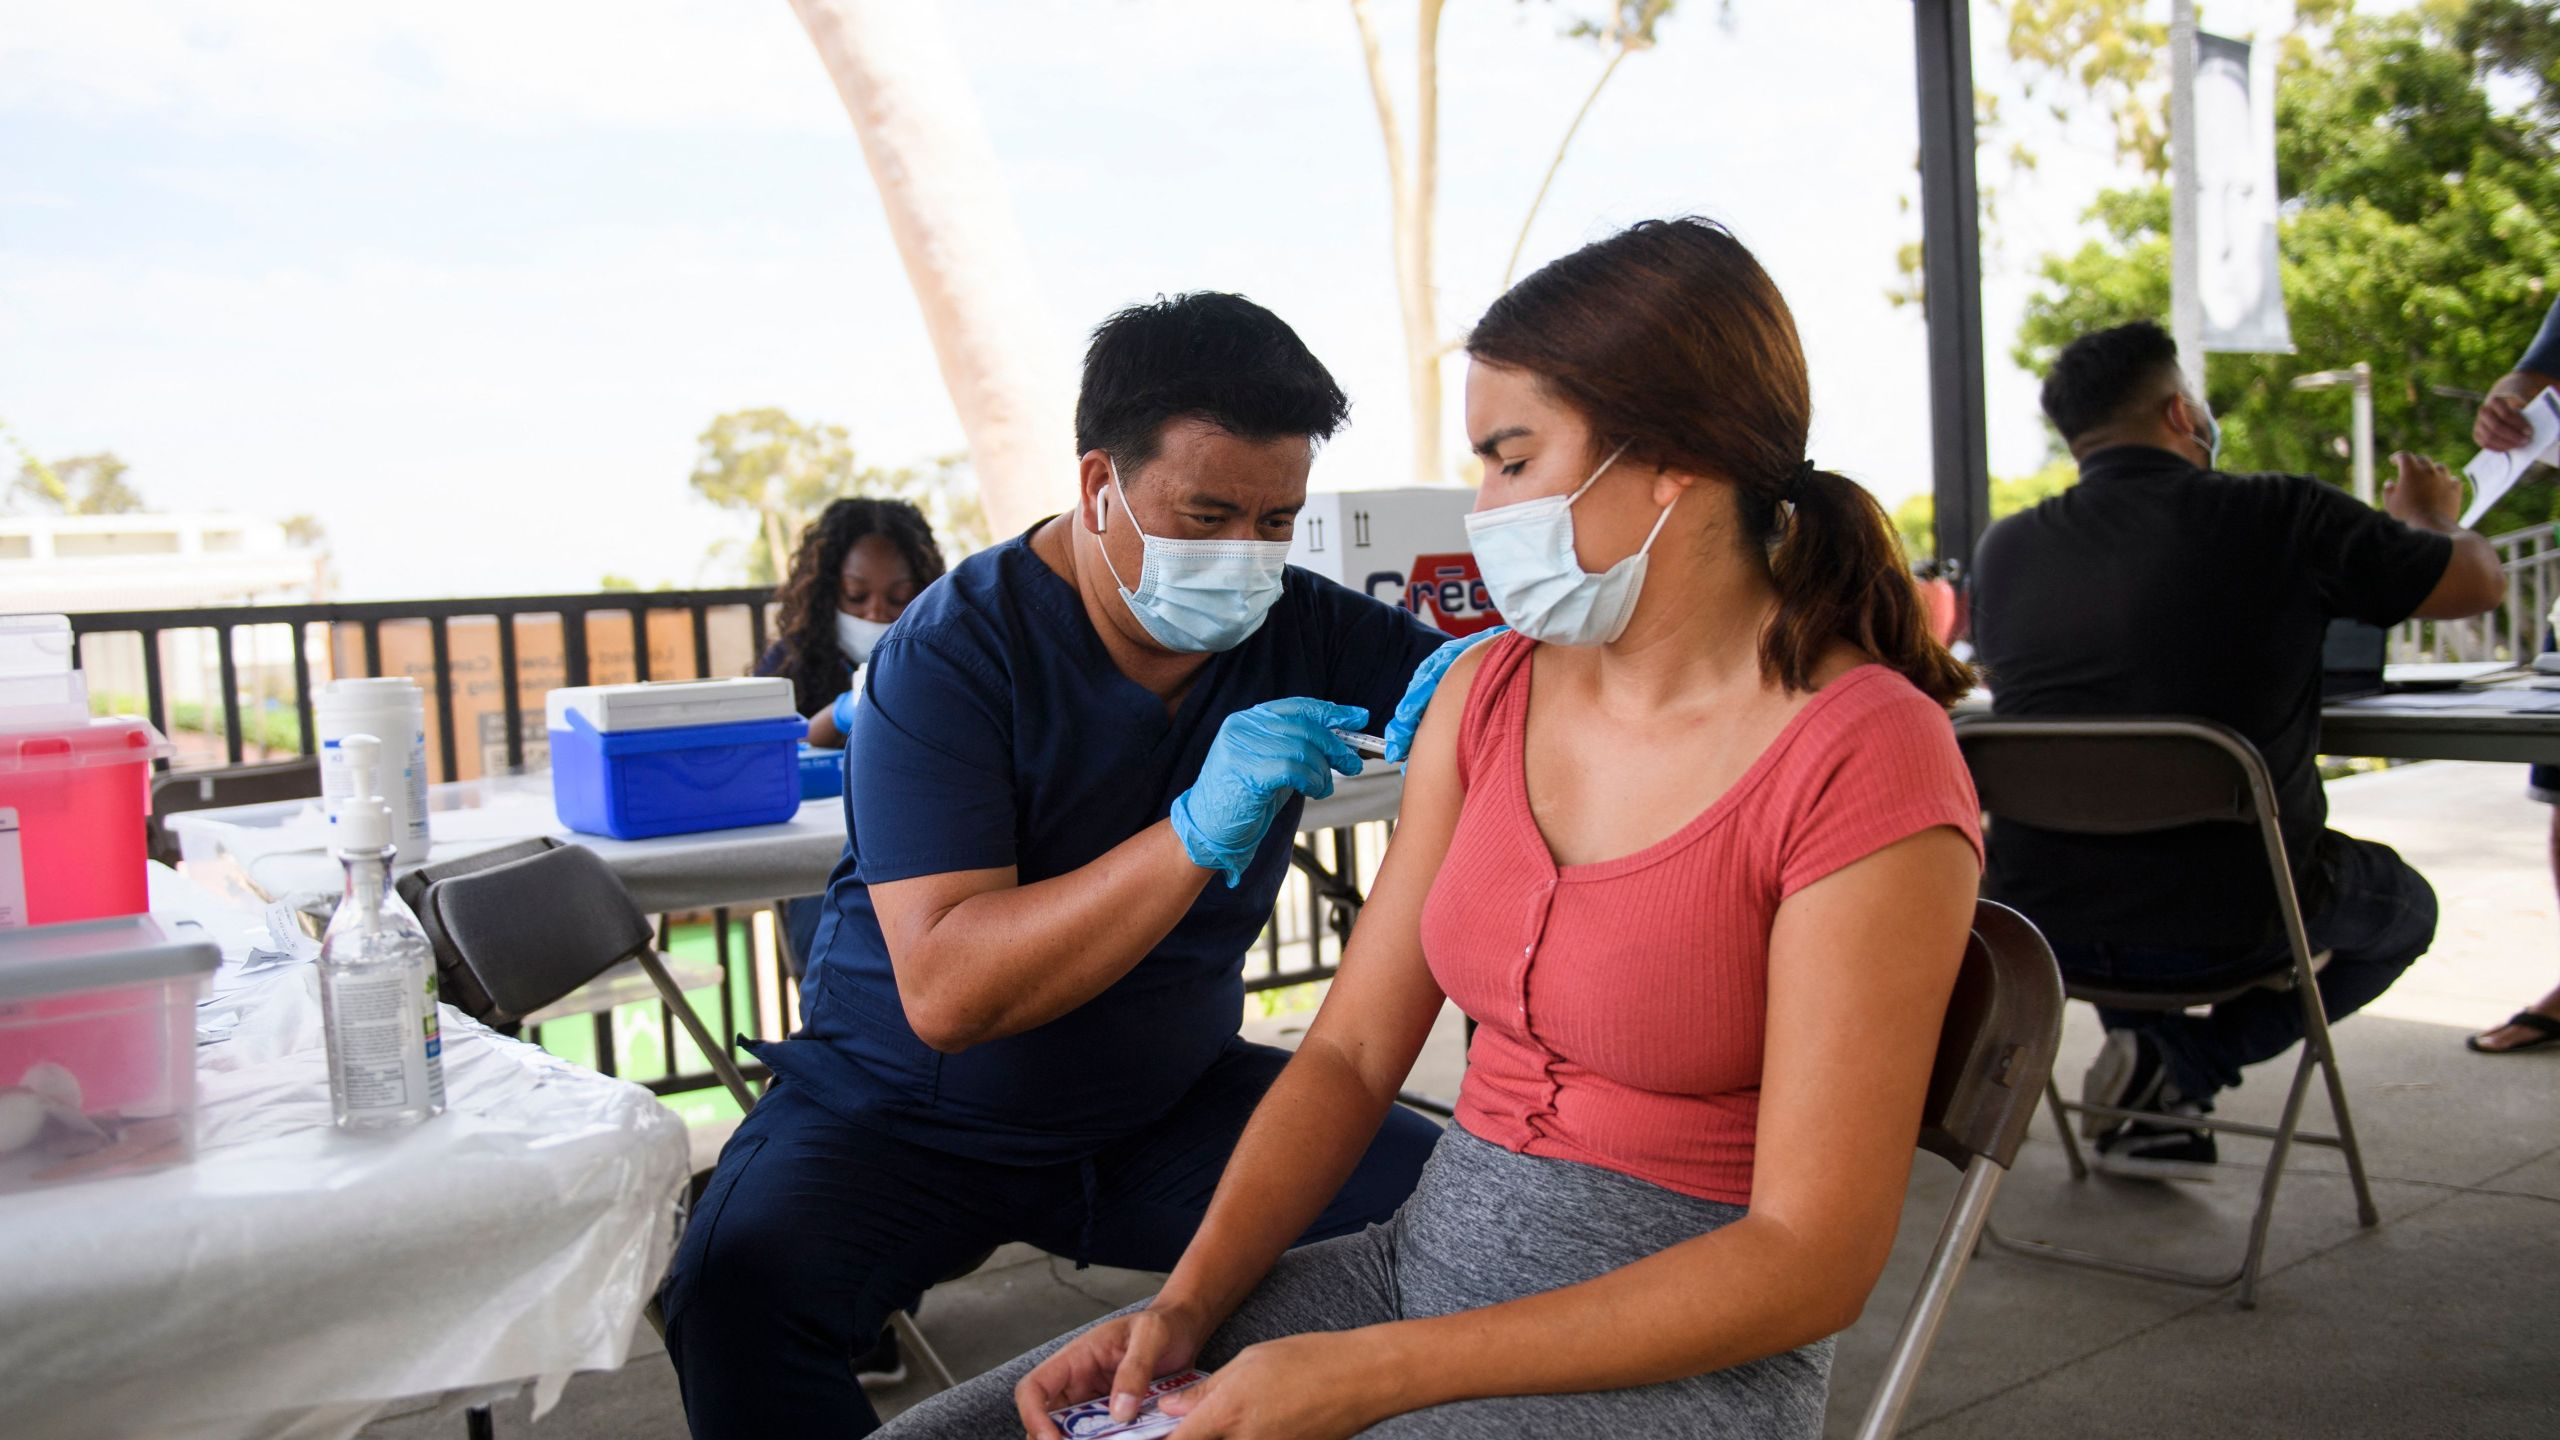 A CSULB student receives a first dose of the Pfizer Covid-19 vaccine during a City of Long Beach Public Health Covid-19 mobile vaccination clinic at the California State University Long Beach (CSULB) campus on Aug. 11, 2021 in Long Beach, California. - Students, staff, and faculty at the California State University (CSU) and University of California (UC) system schools will be required to be fully vaccinated in order to attend in-person classes. All teachers in California will have to be vaccinated against Covid-19 or submit to weekly virus tests, the state's governor announced June 11, as authorities grapple with exploding infection rates. (Photo by Patrick T. FALLON / AFP) (Photo by PATRICK T. FALLON/AFP via Getty Images)